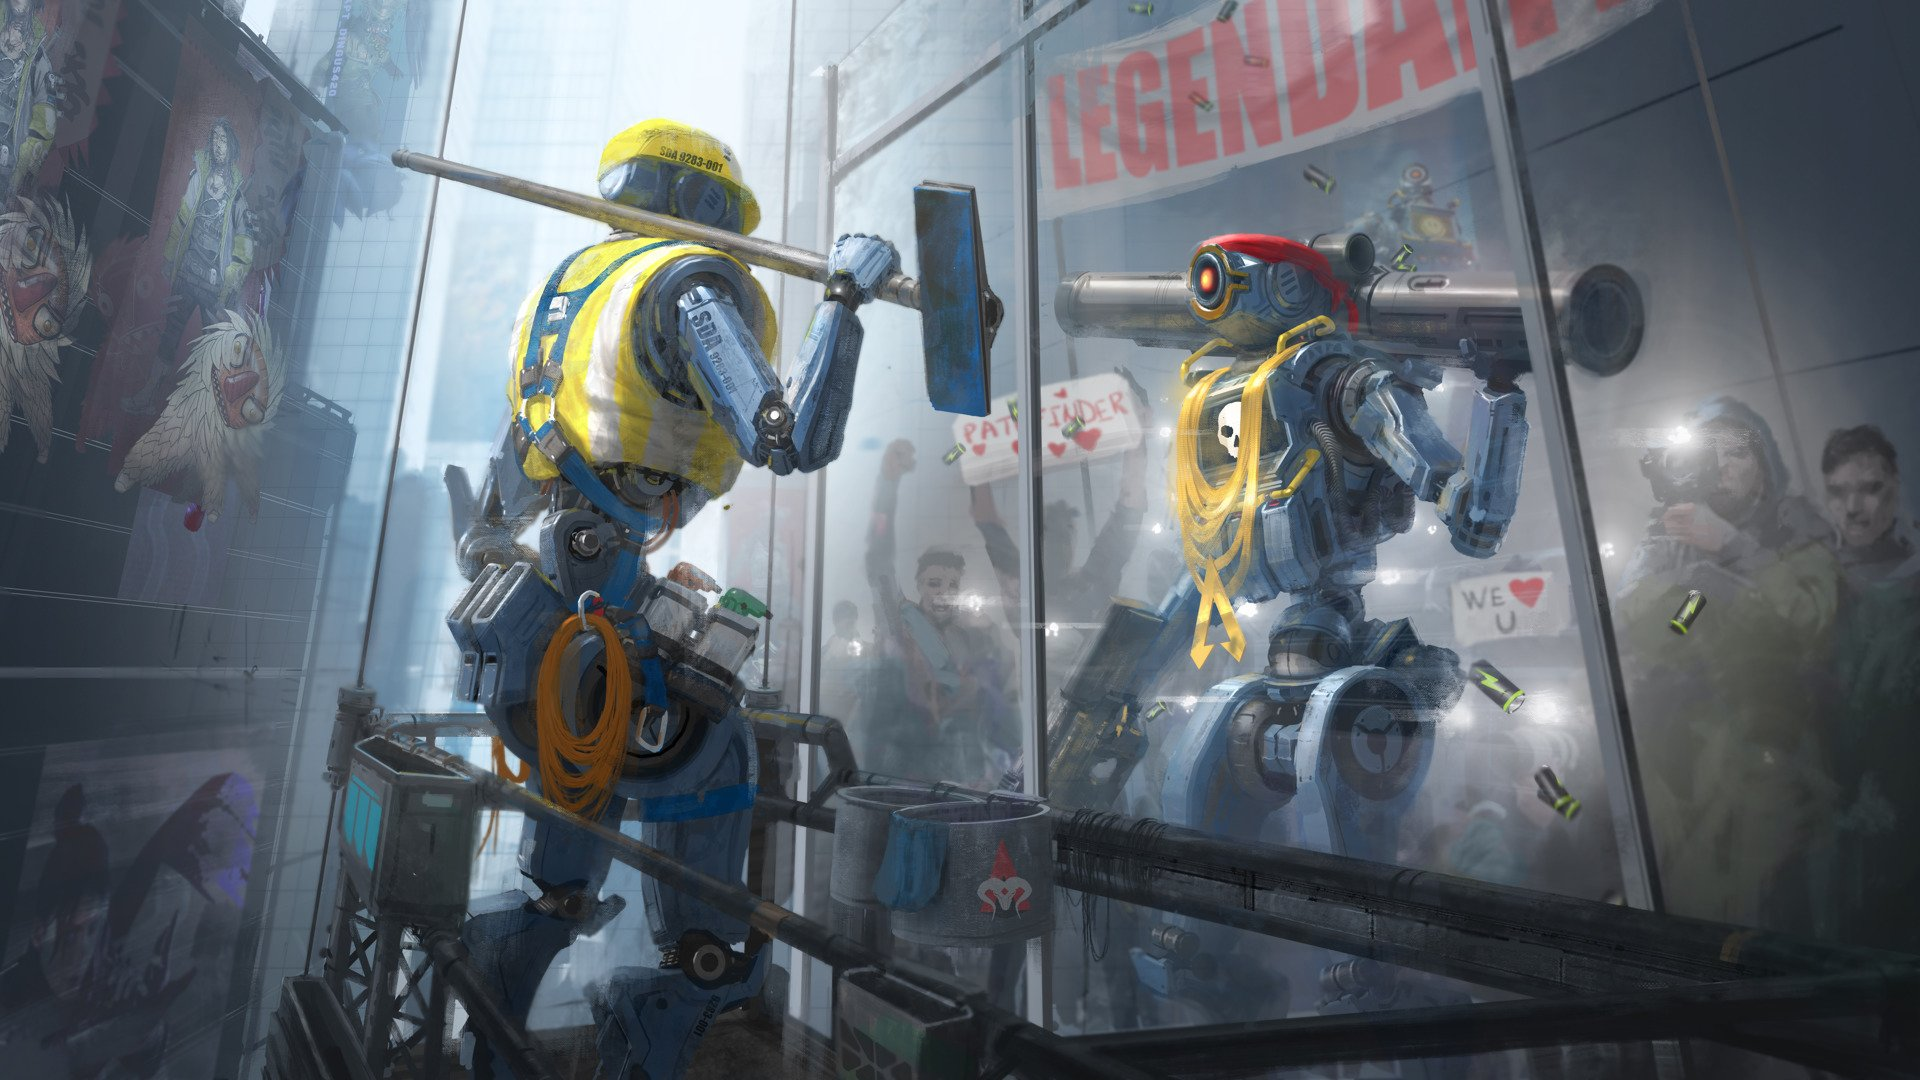 Pathfinder Apex Legends Awesome Art 4521 Wallpapers and 1920x1080